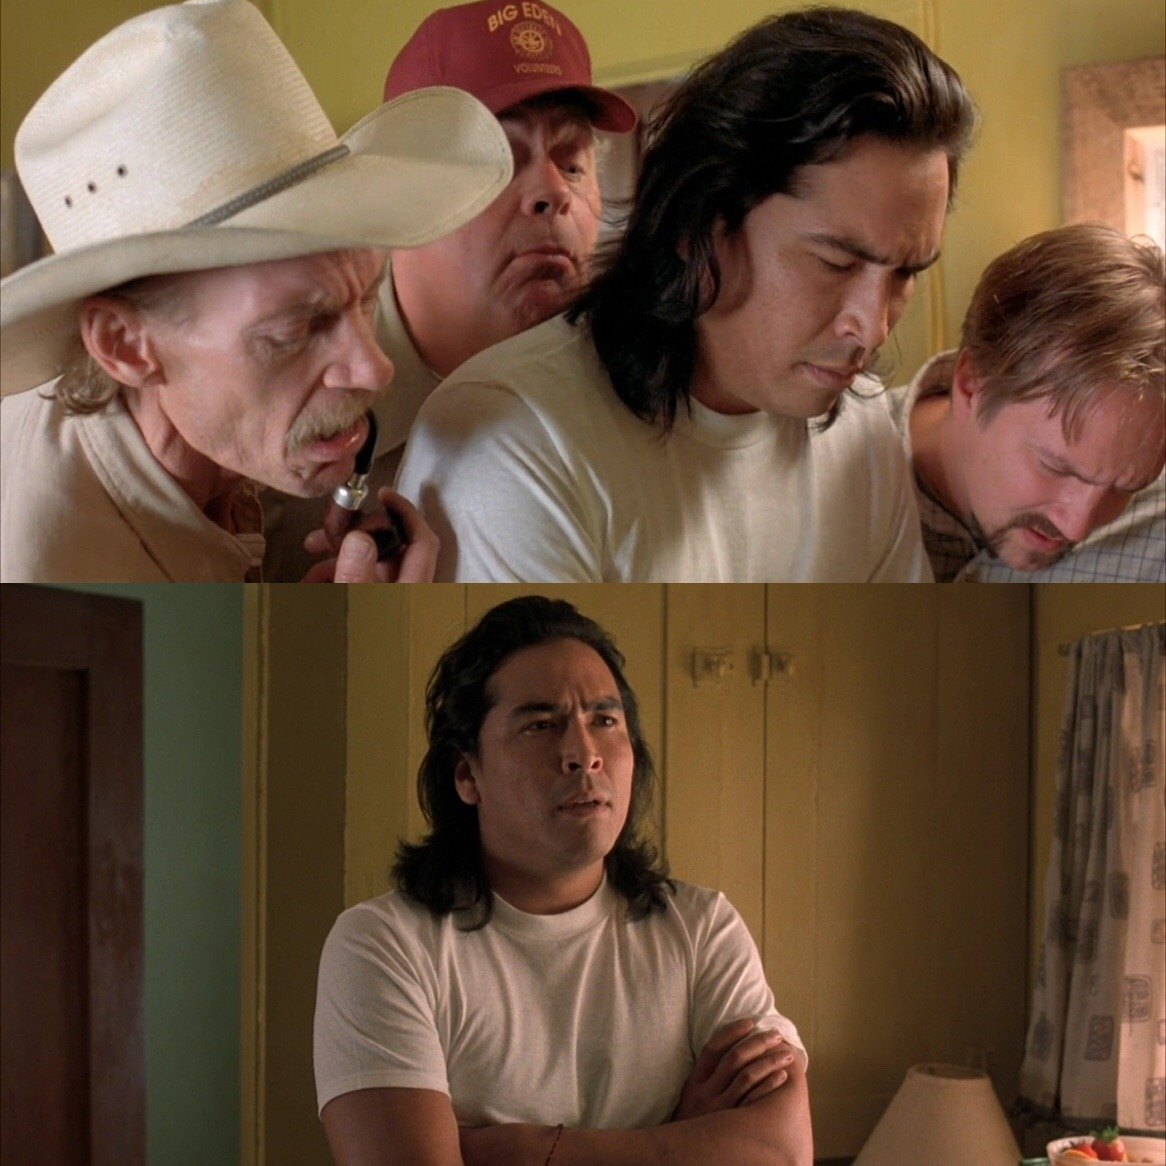 Kelly Turnbull On Twitter Eric Schweig Delegating Tasks To A Posse Of Helpful Cowboys Trying To Help Him Romance This Little Ratfaced New York Artist He Likes Is The Content You Never Loved big eden and bought it.seen skins preview. eric schweig delegating tasks